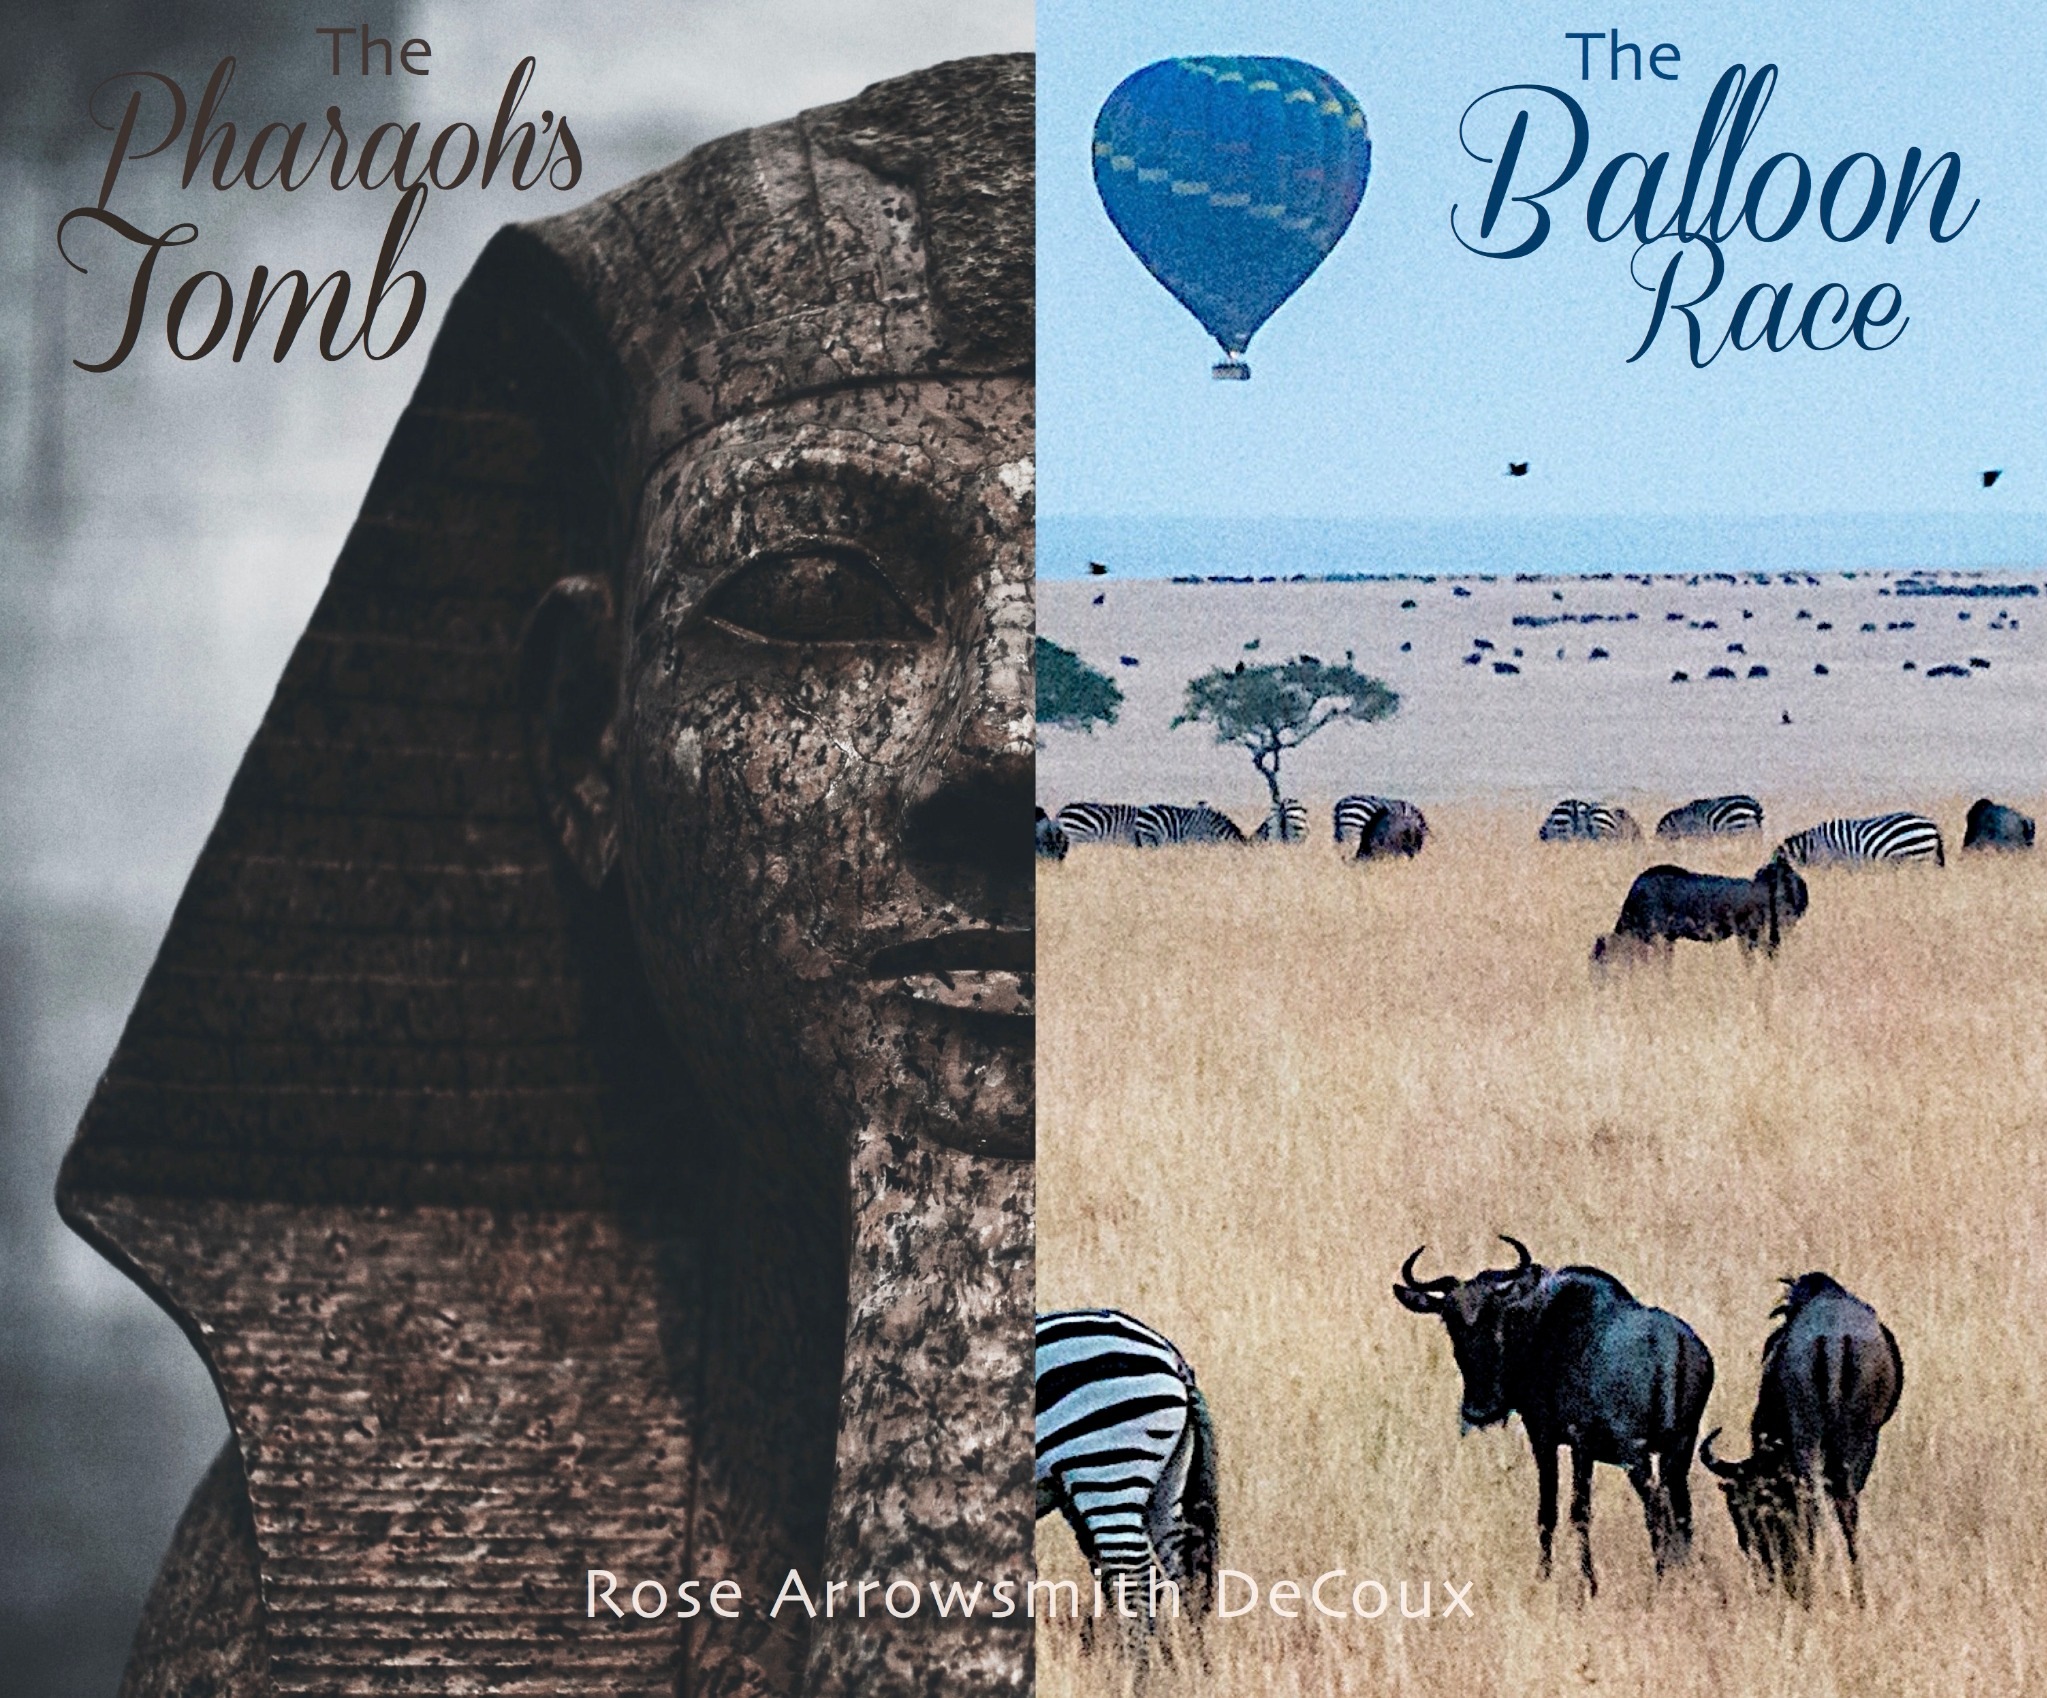 The Balloon Race & The Pharaoh's Tomb